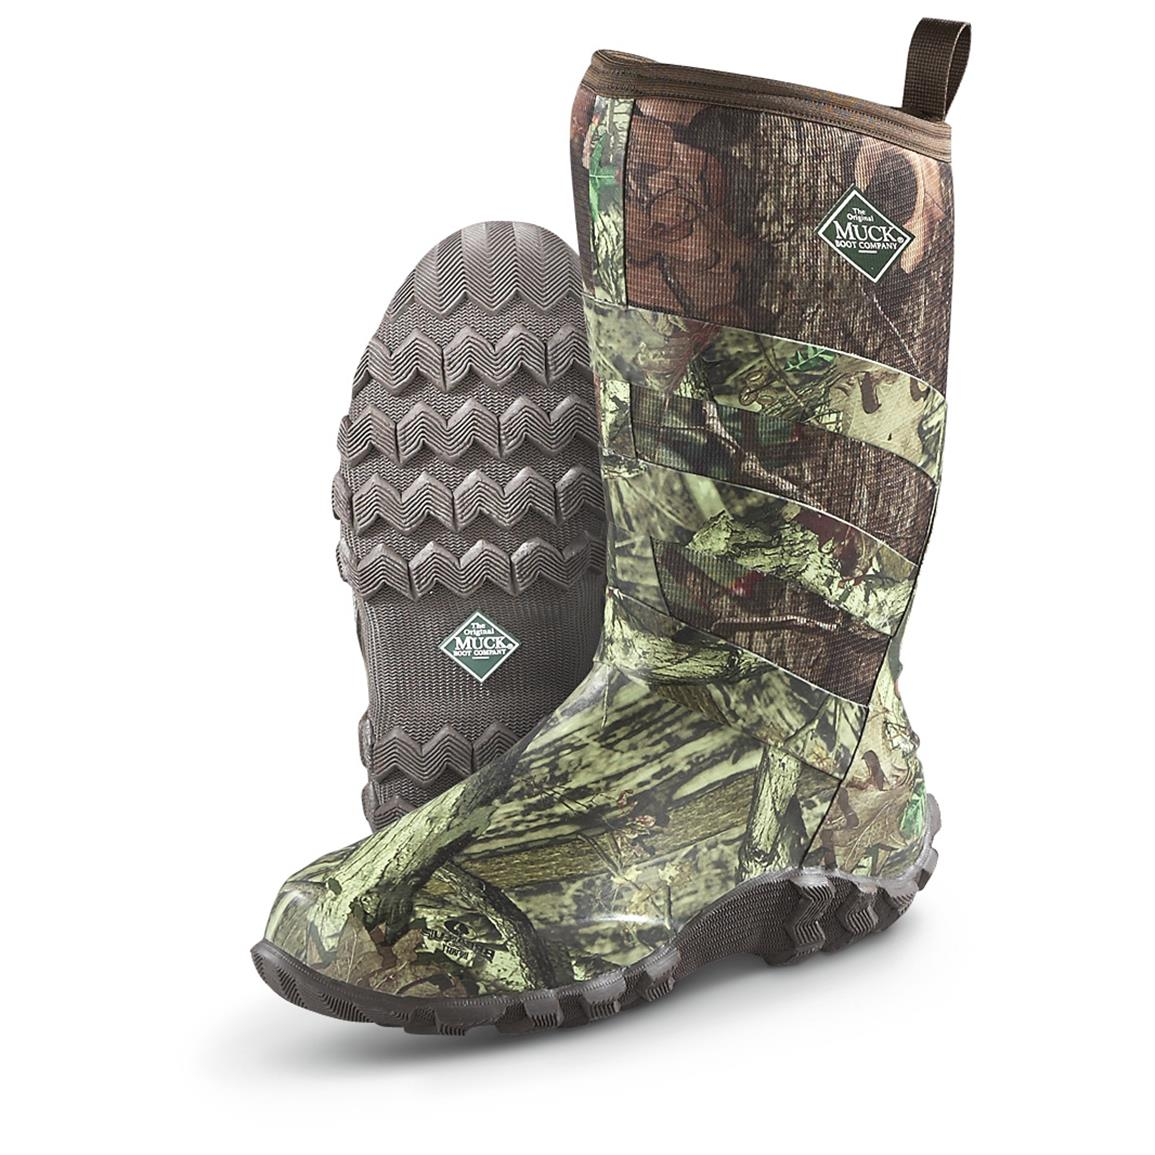 Muck Hunting Boots OAaAcQFn